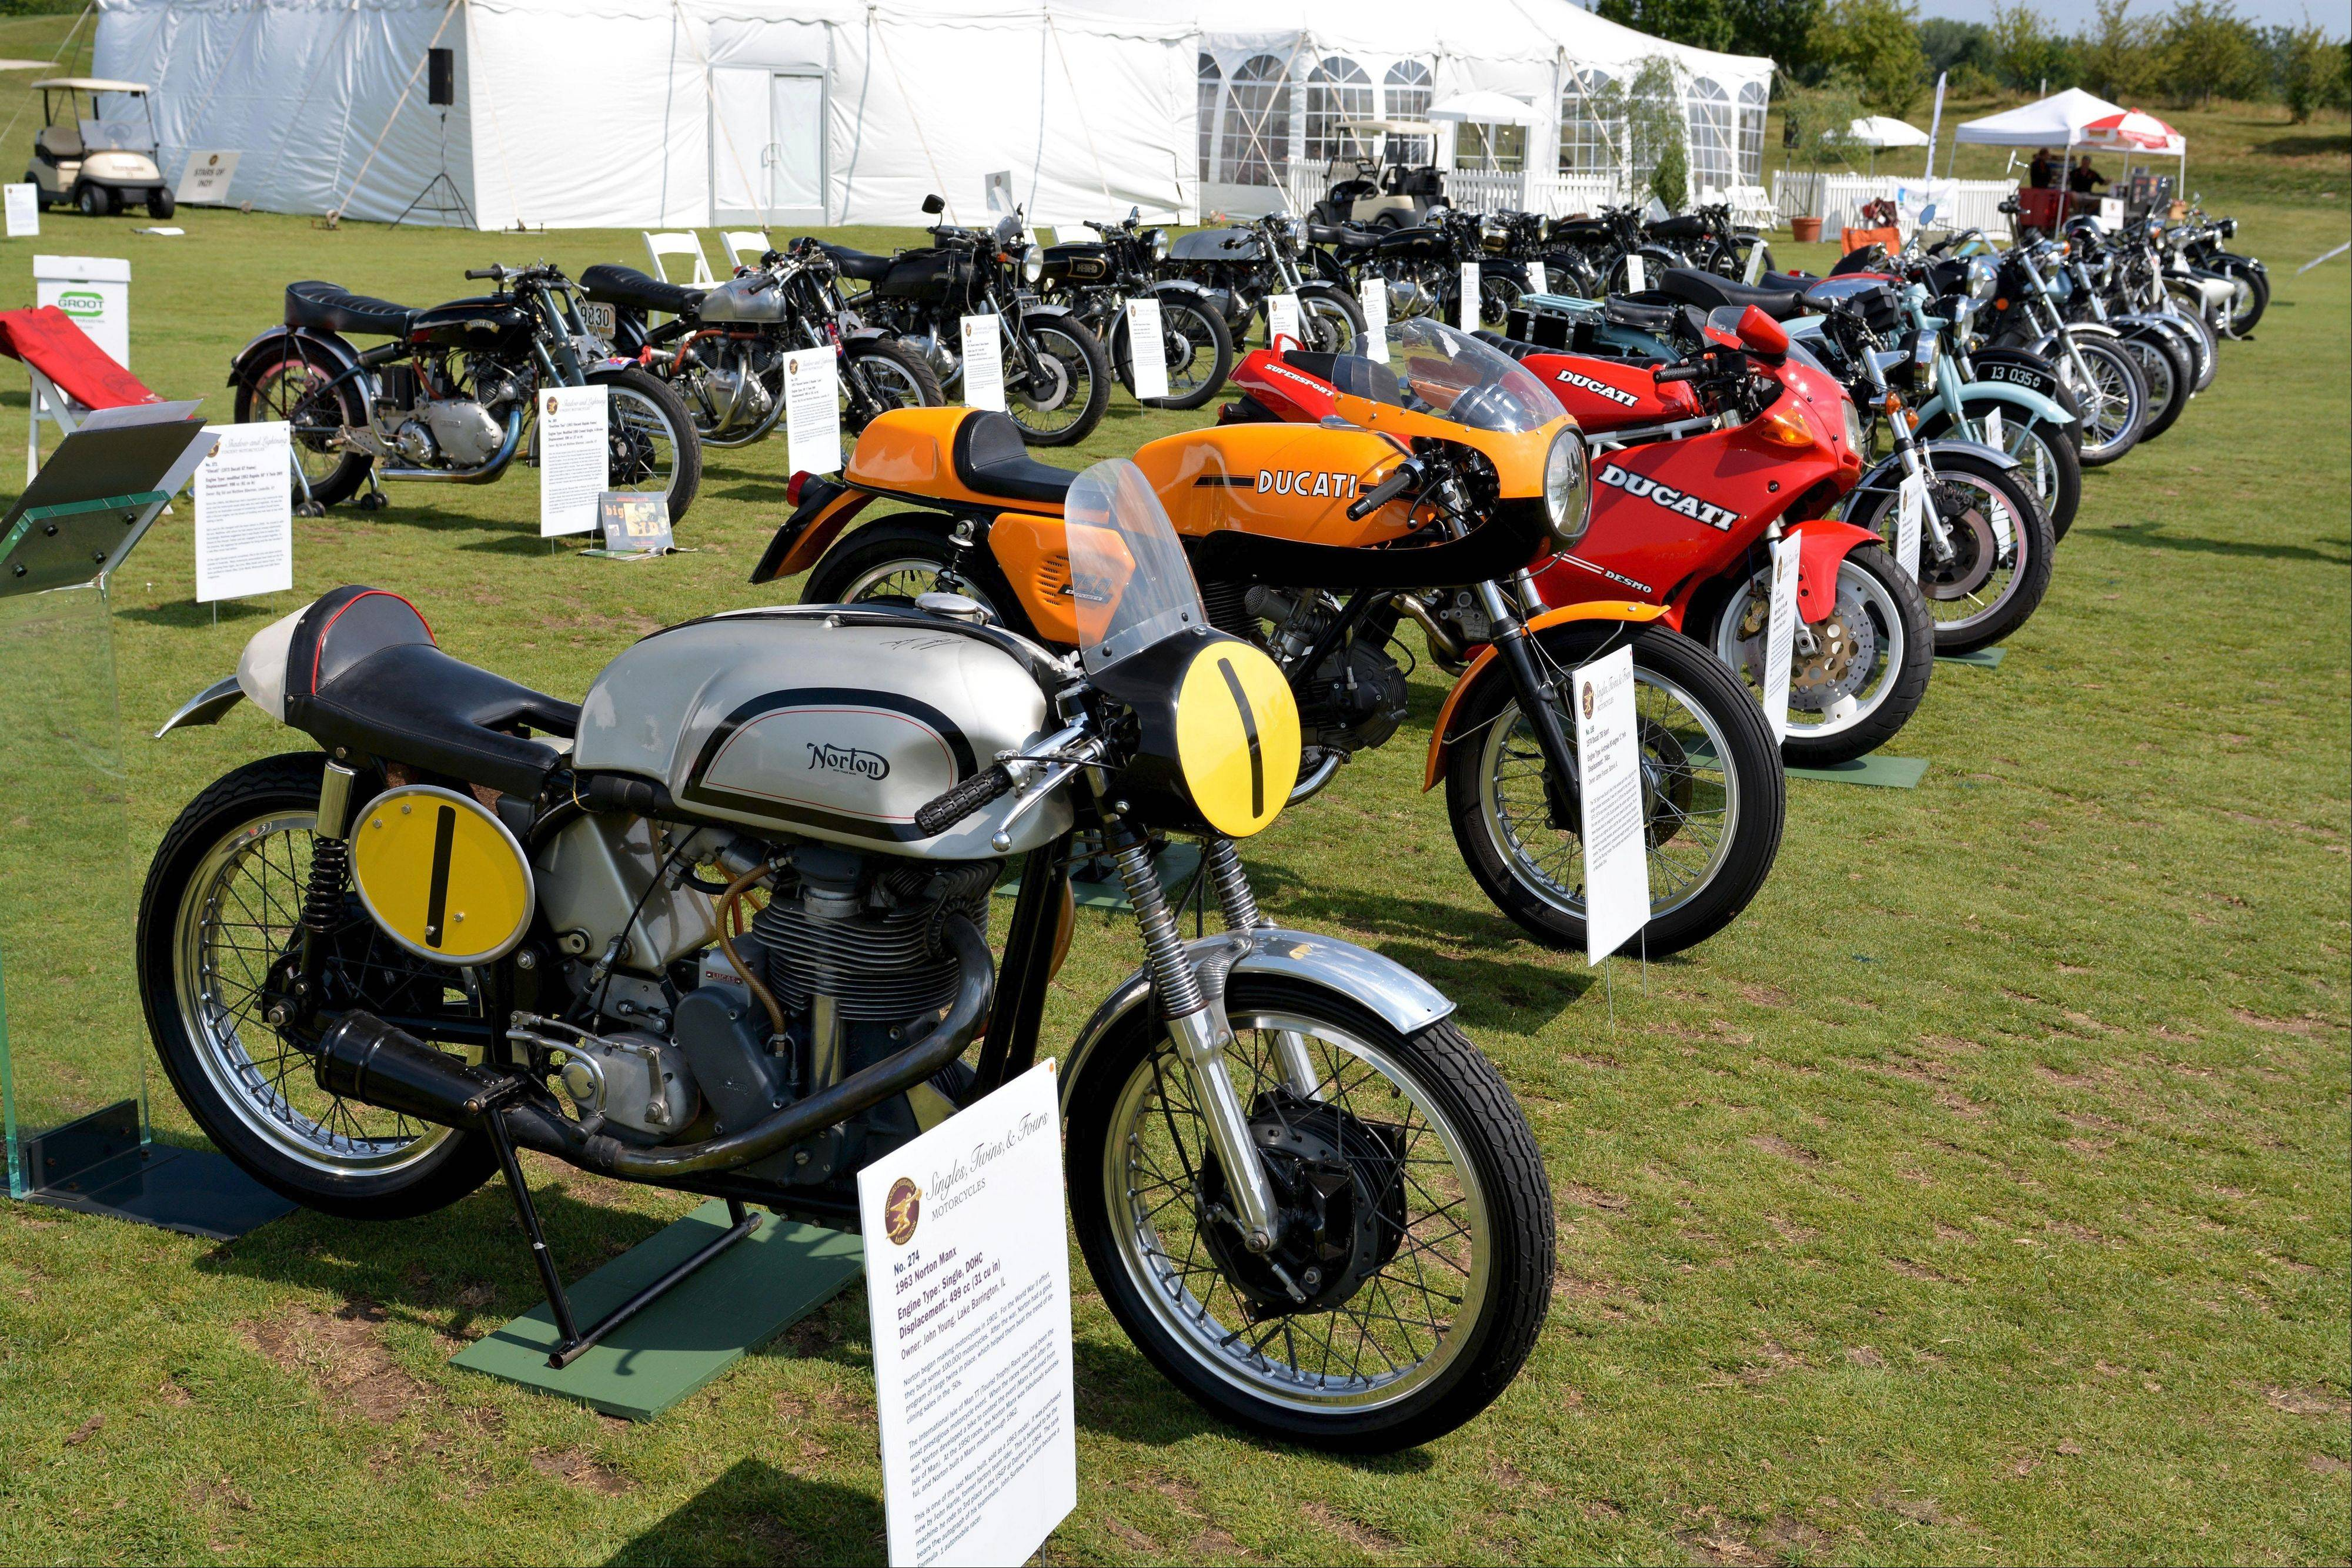 A number of vintage motorcycles were entered for judging in the show.